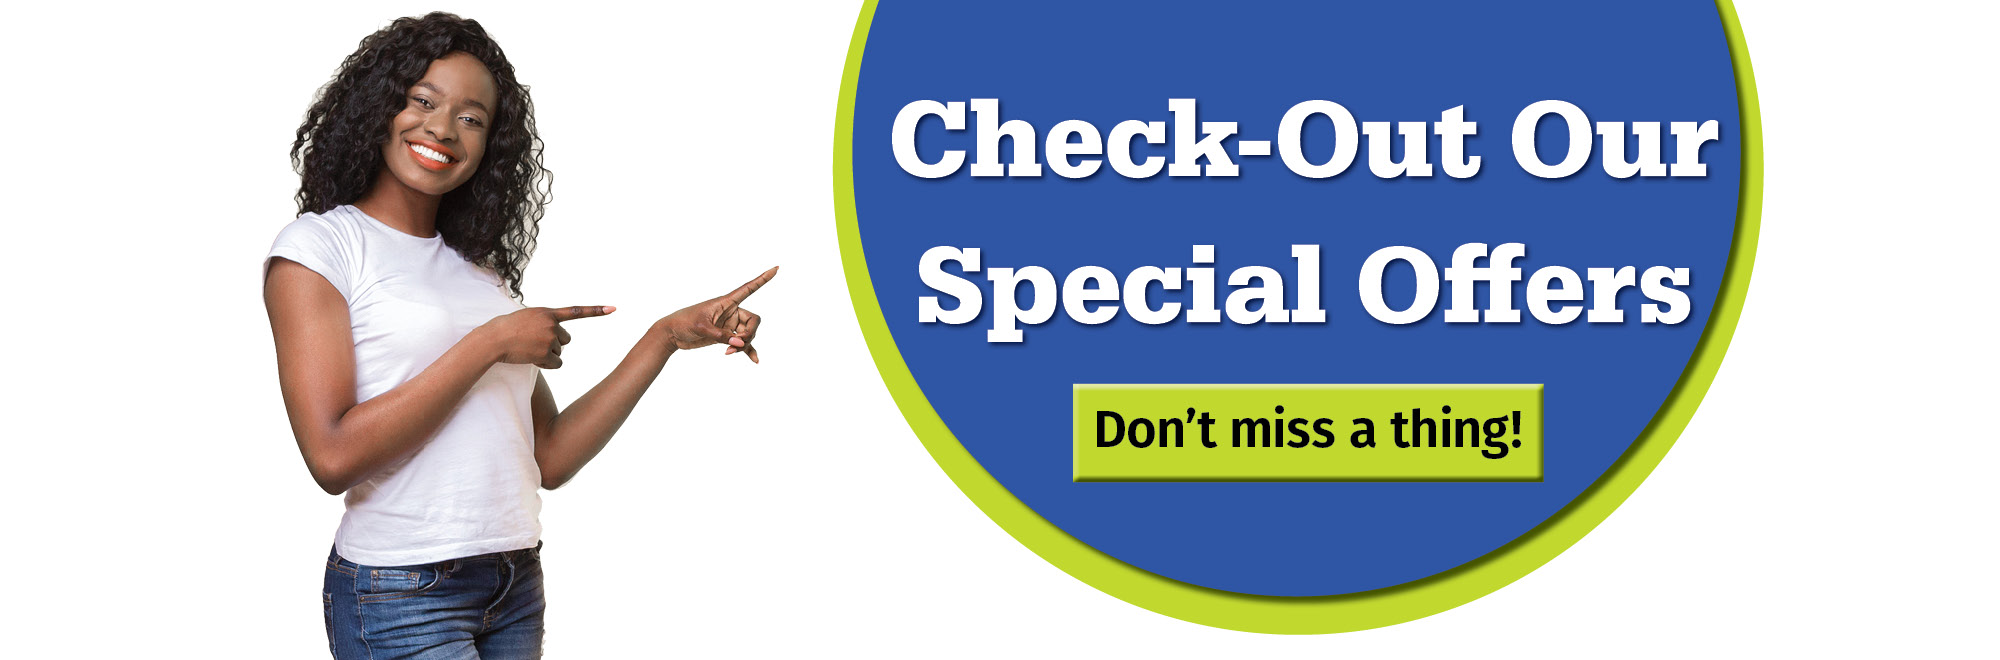 Check-Out Our Special Offers. Don't miss a thing!